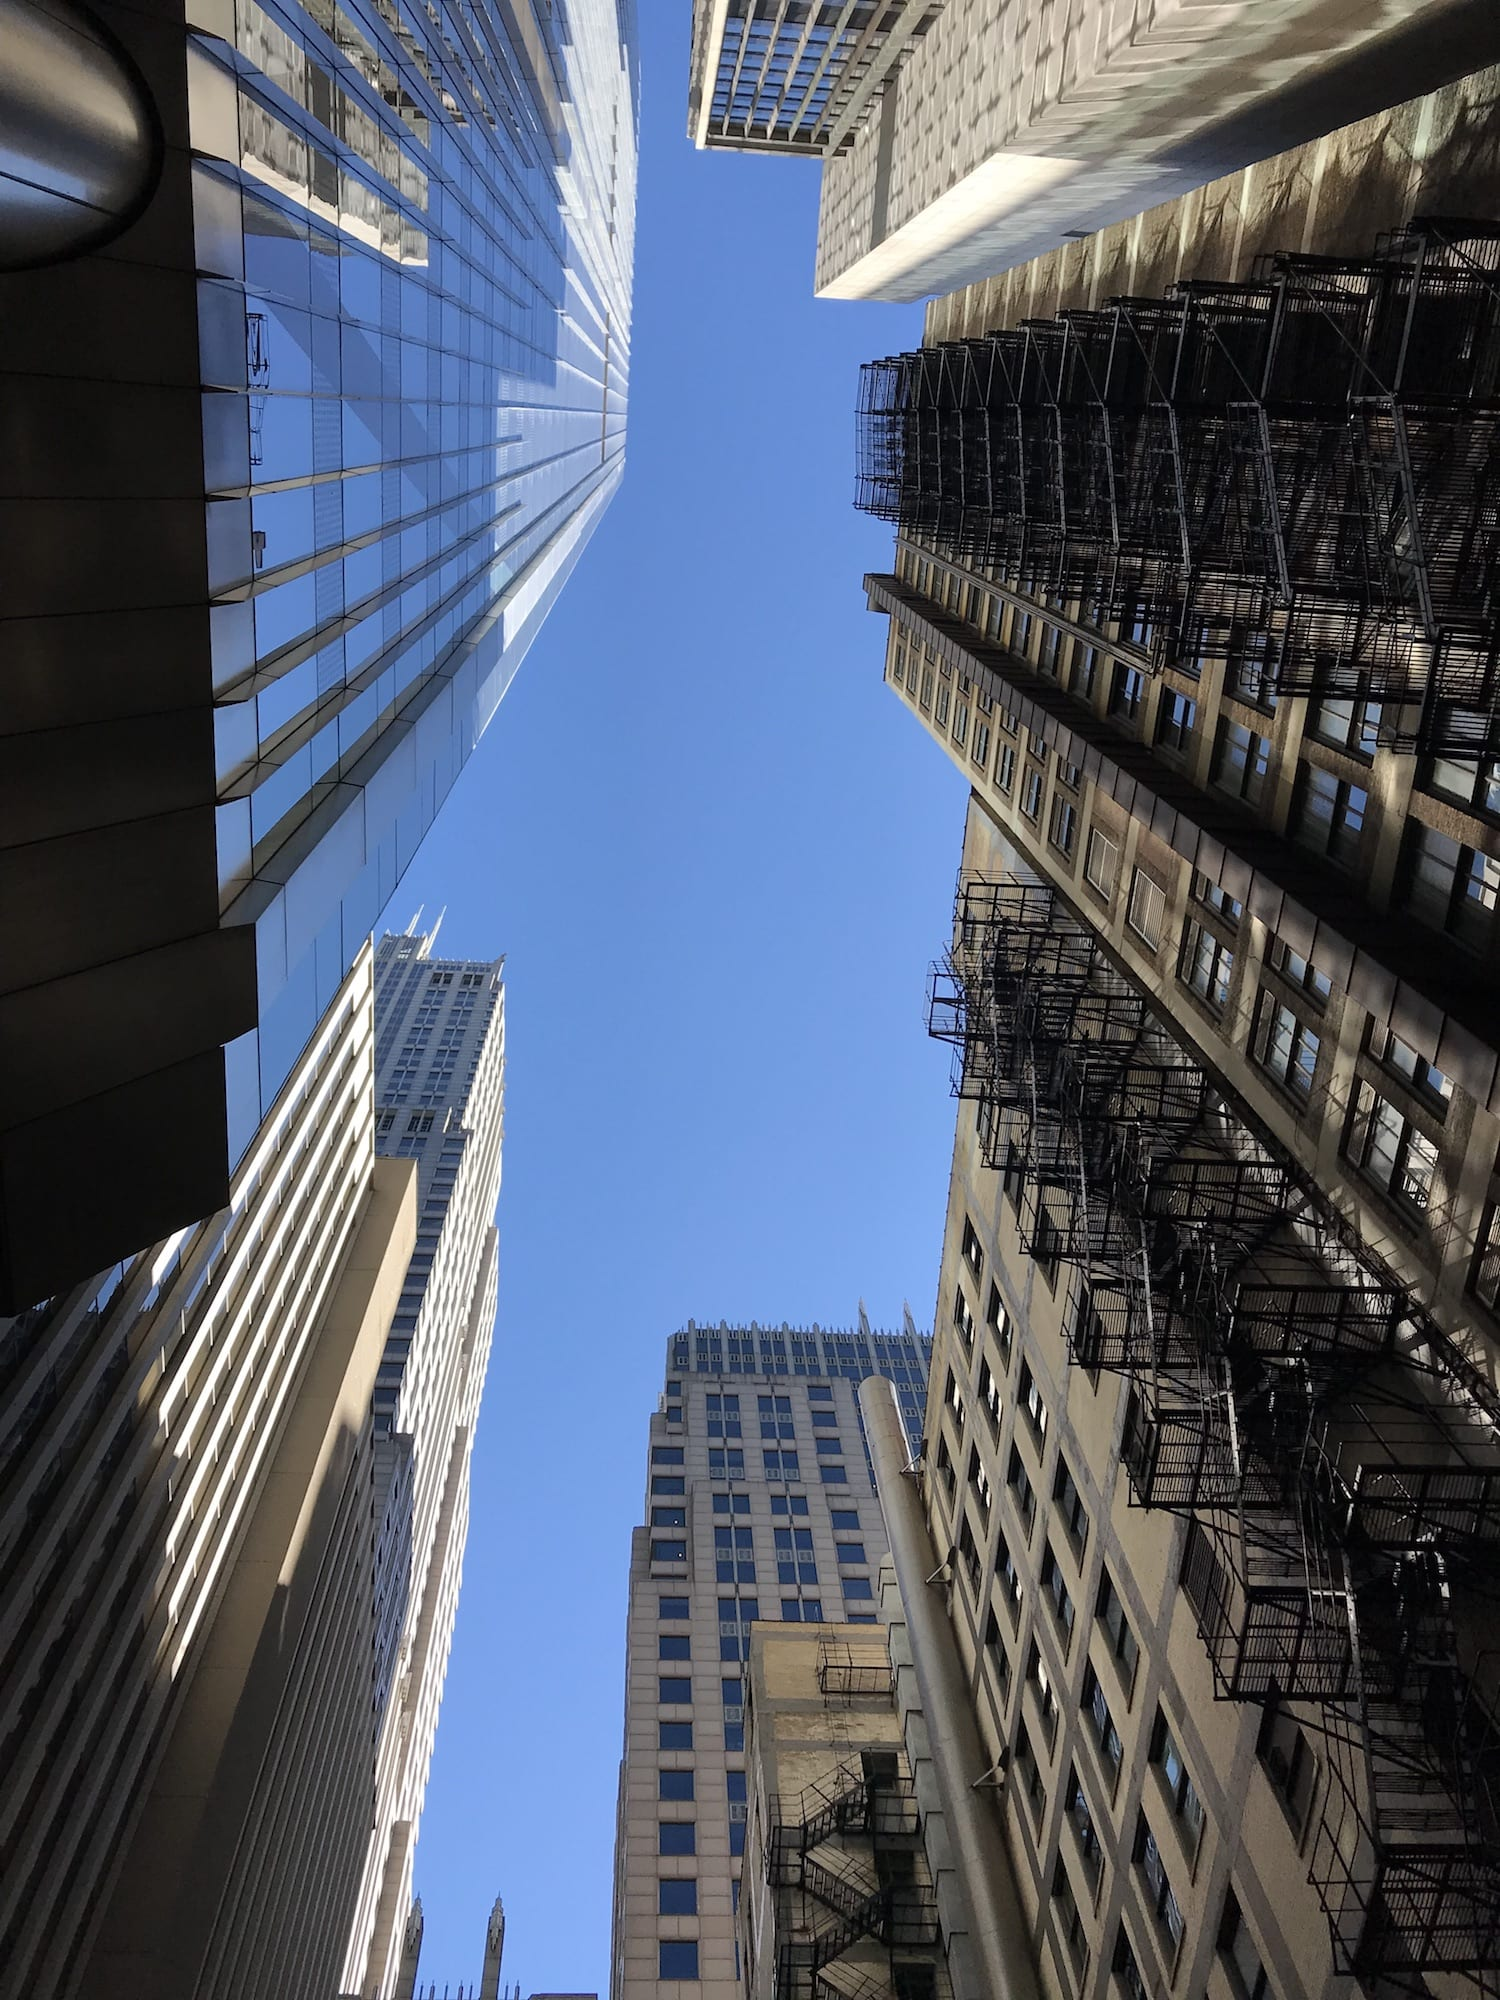 A view of Chicago looking up through the skyscrapers